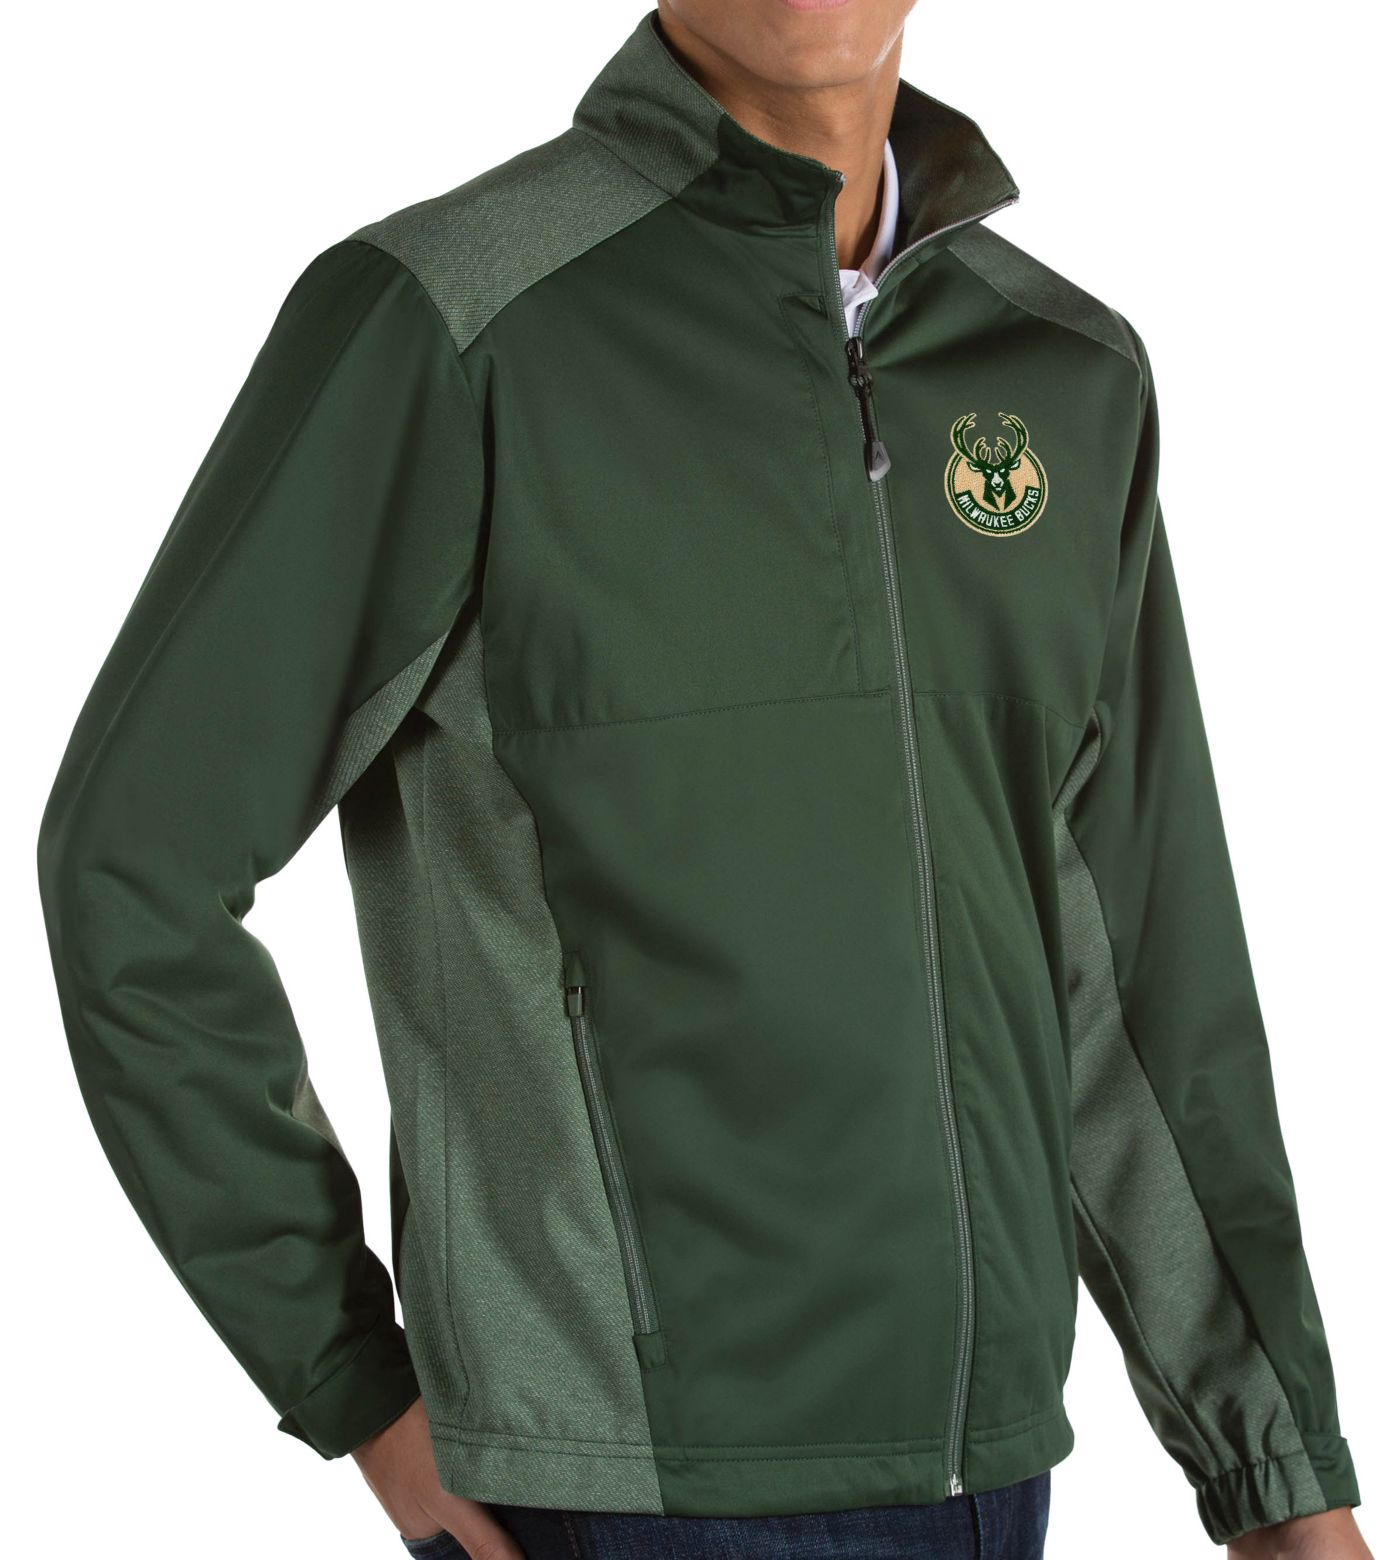 Antigua Men's Milwaukee Bucks Revolve Full-Zip Jacket